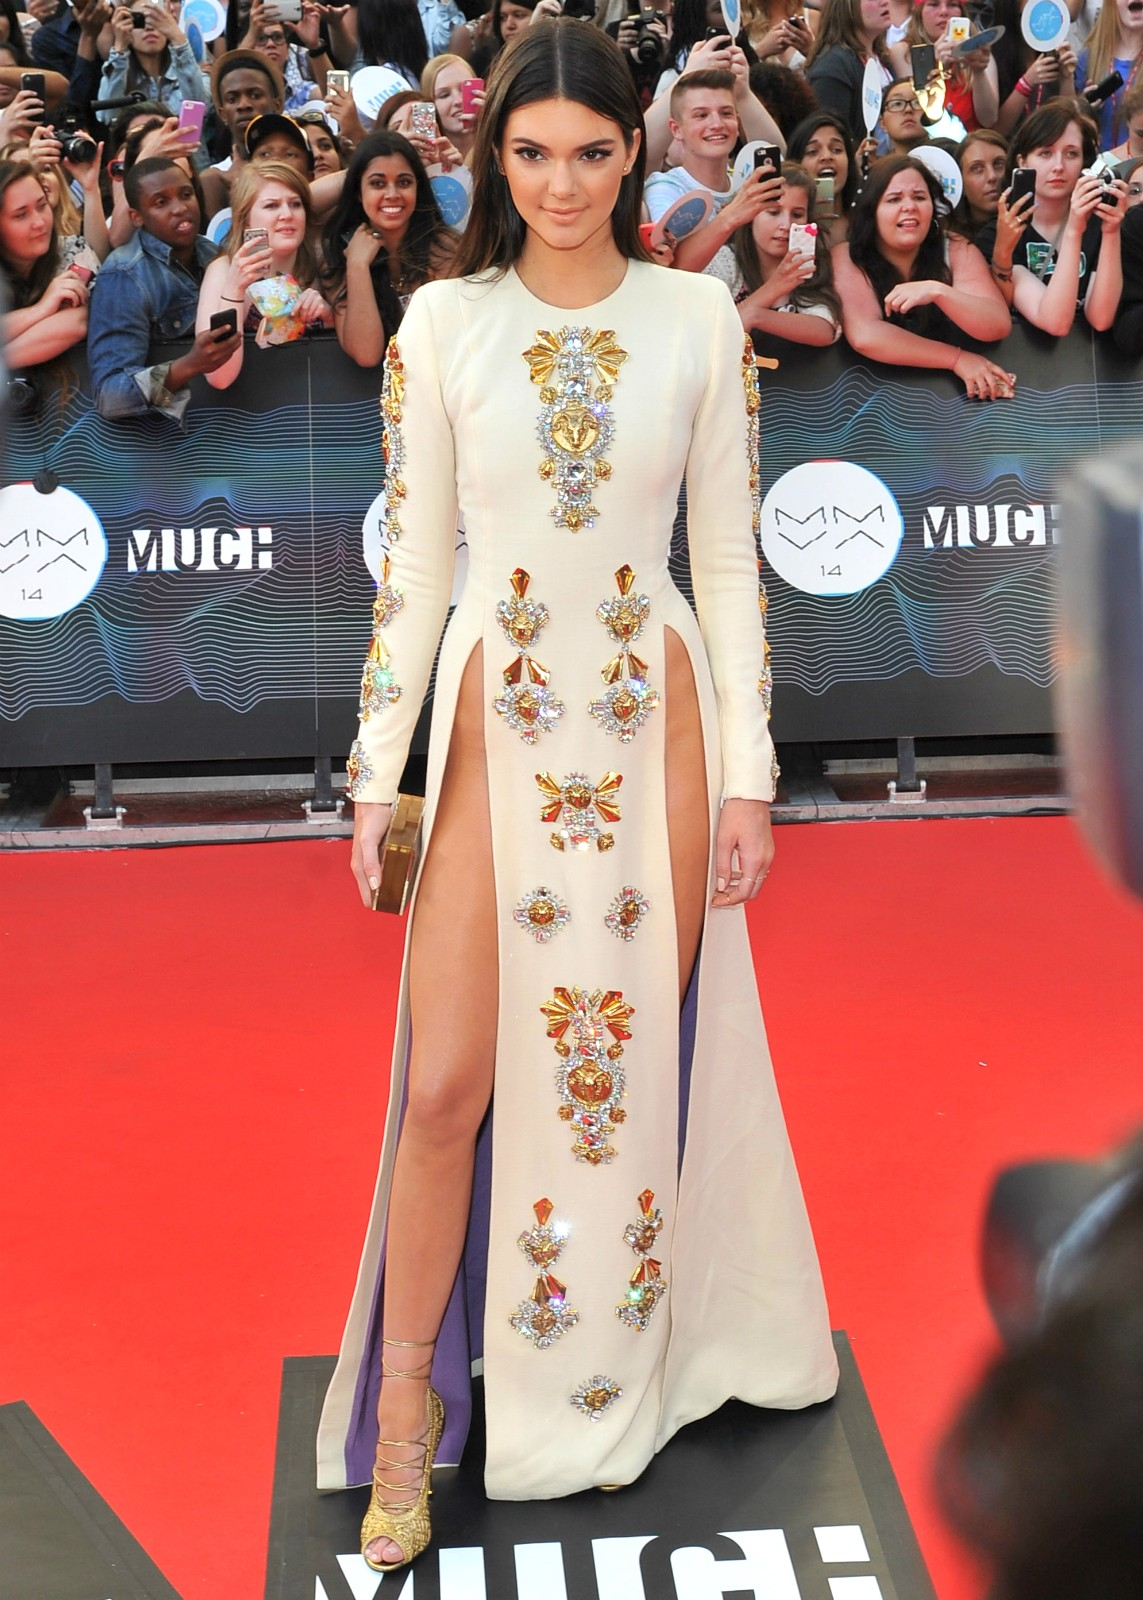 A modelo e socialite Kendall Jenner no MuchMusic Video Awards 2014. (Foto: Getty Images)